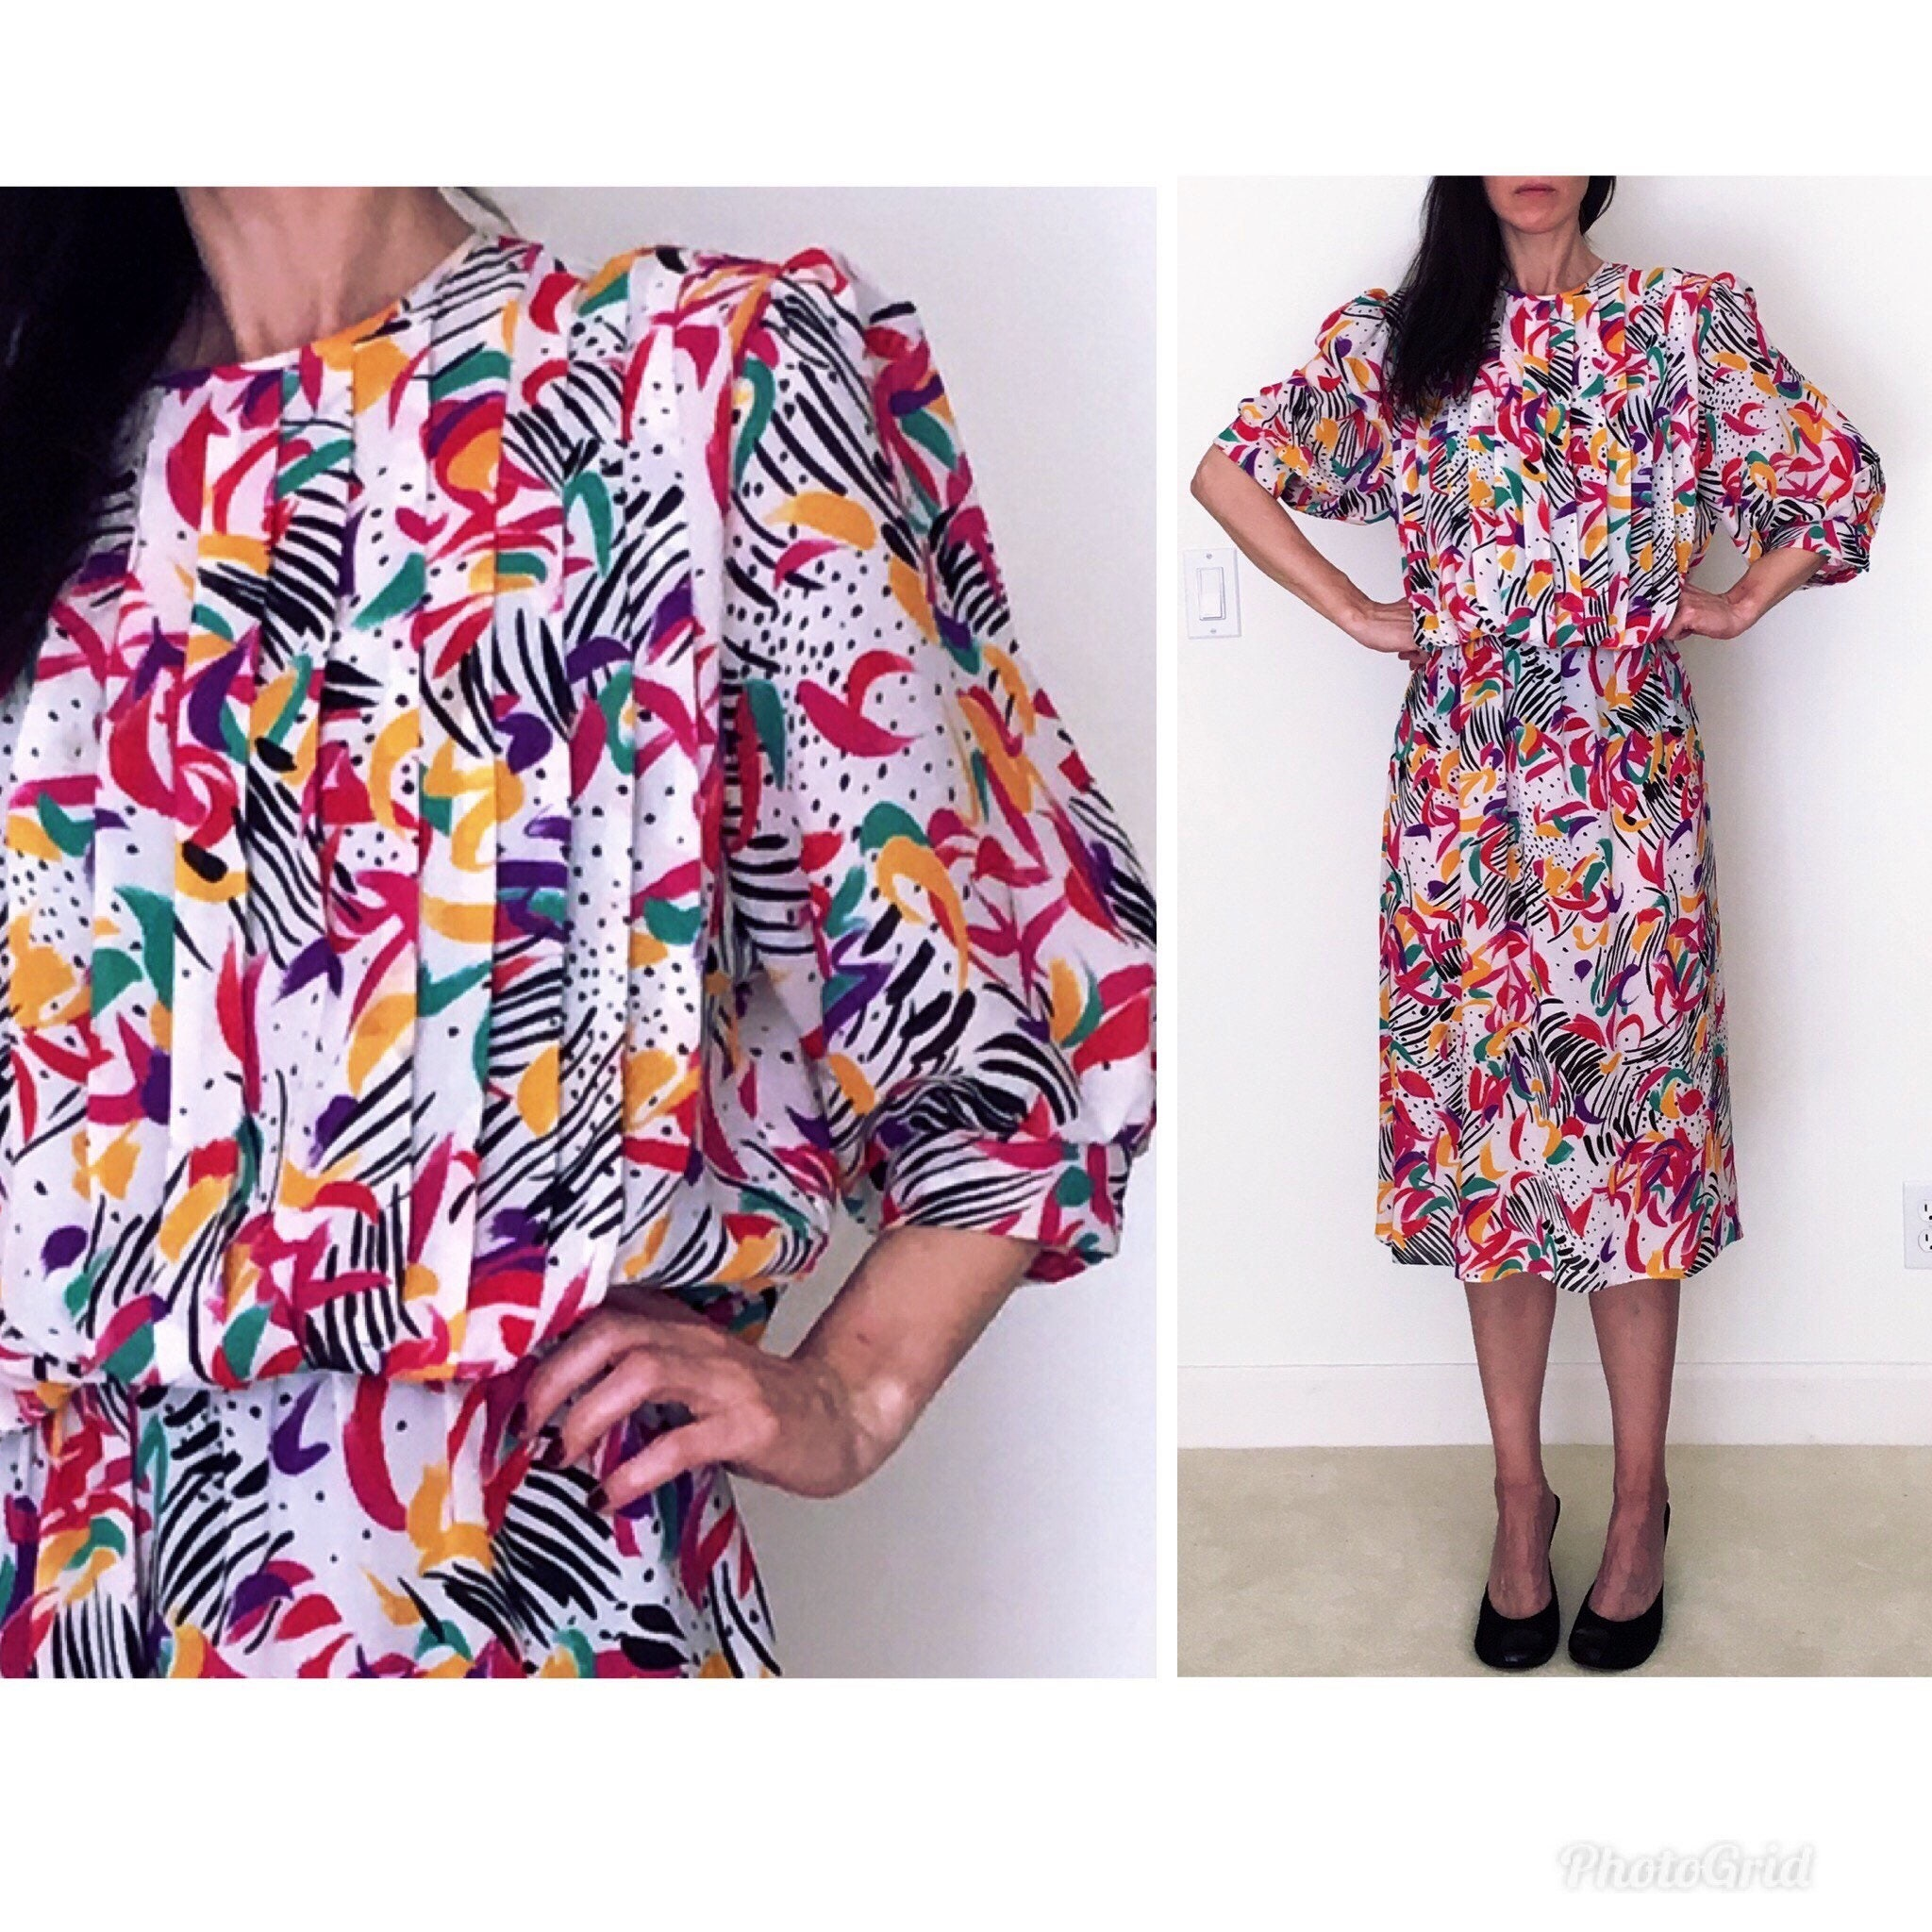 80s Novelty print dress L womenrainbow floral abstract print 80s dressVintage long sleeve secretary hot pink knee length a line midi dress